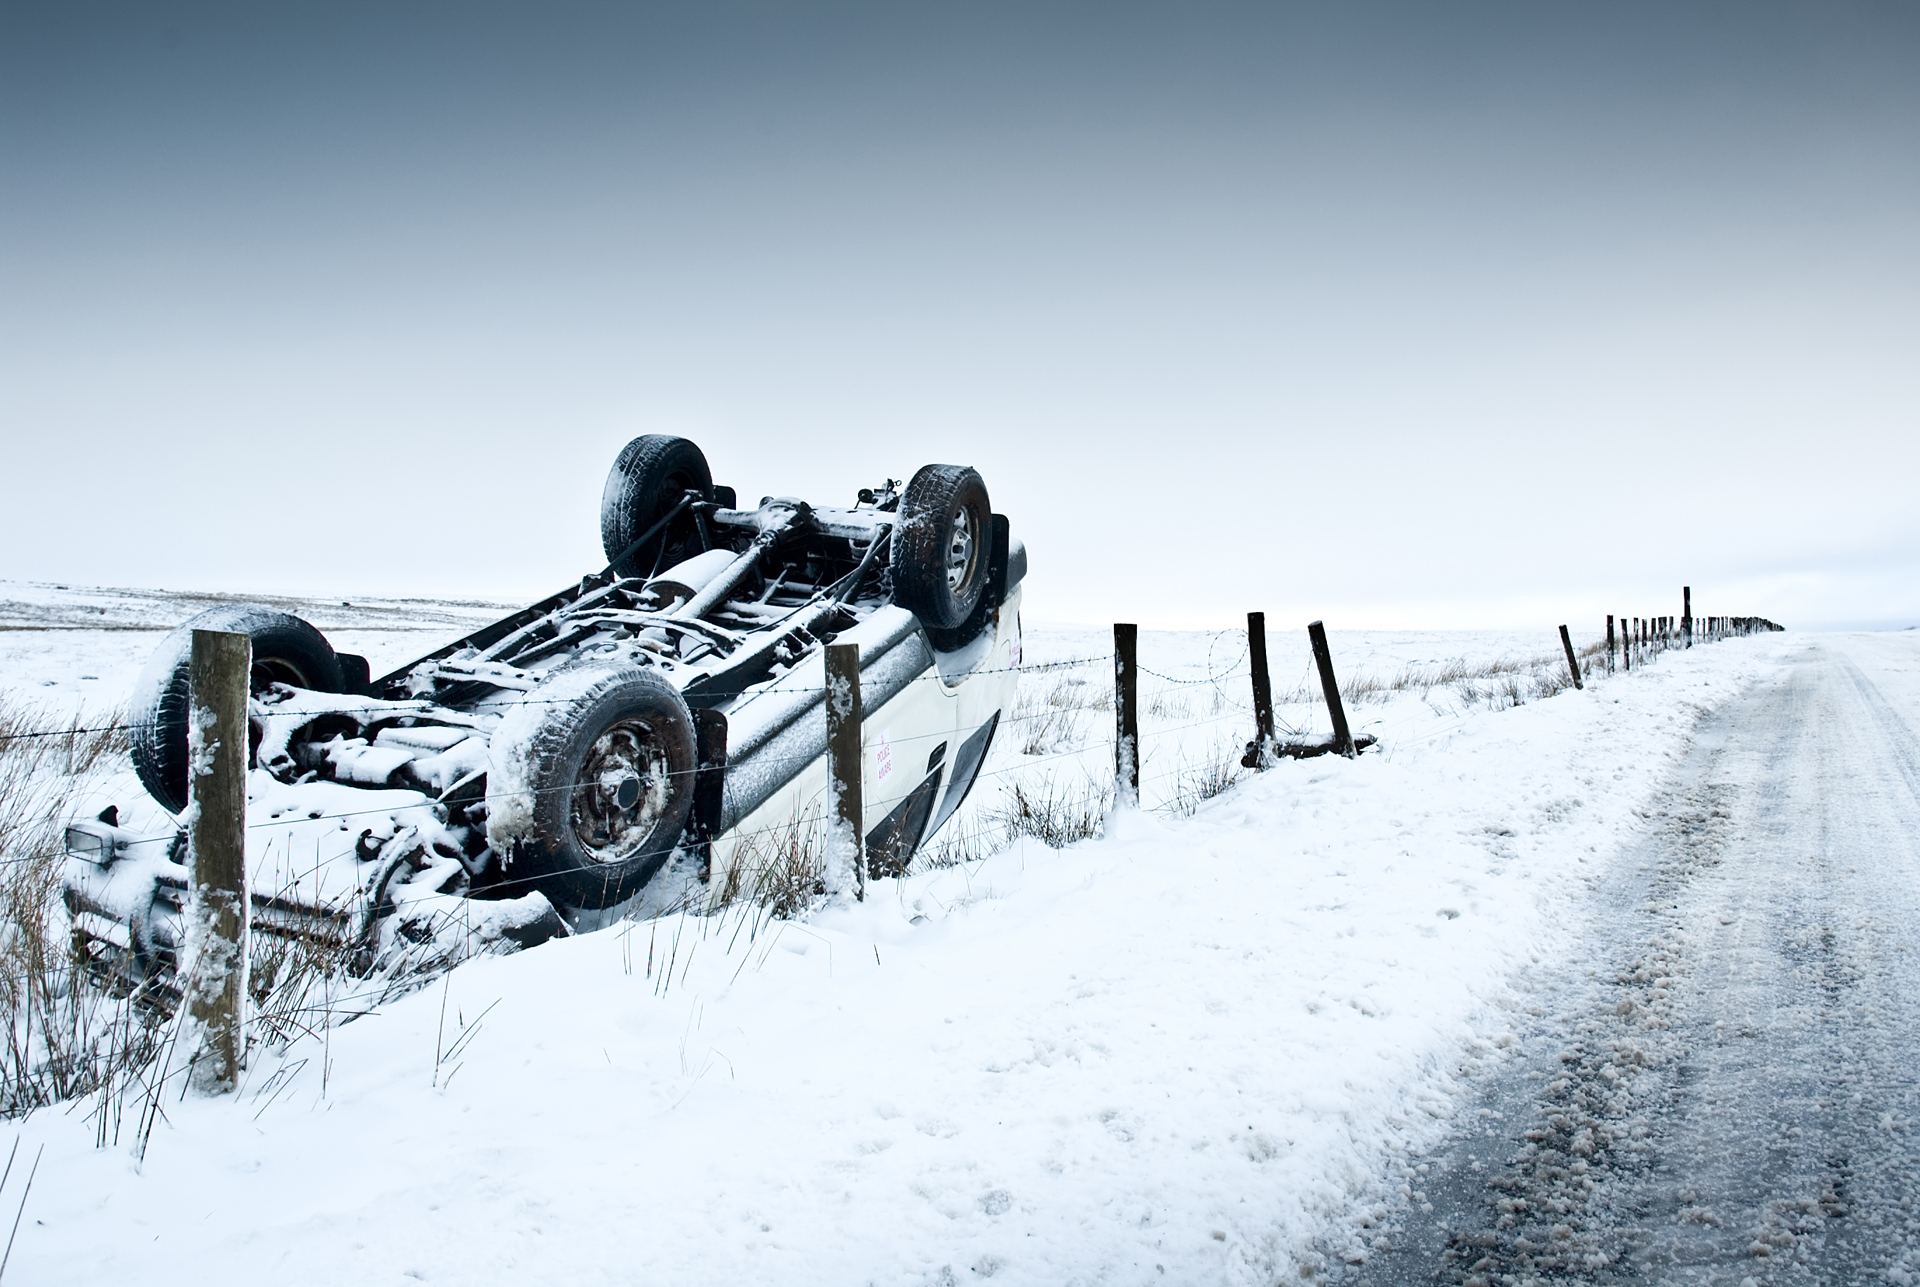 Crashed 4X4 Covered In Snow